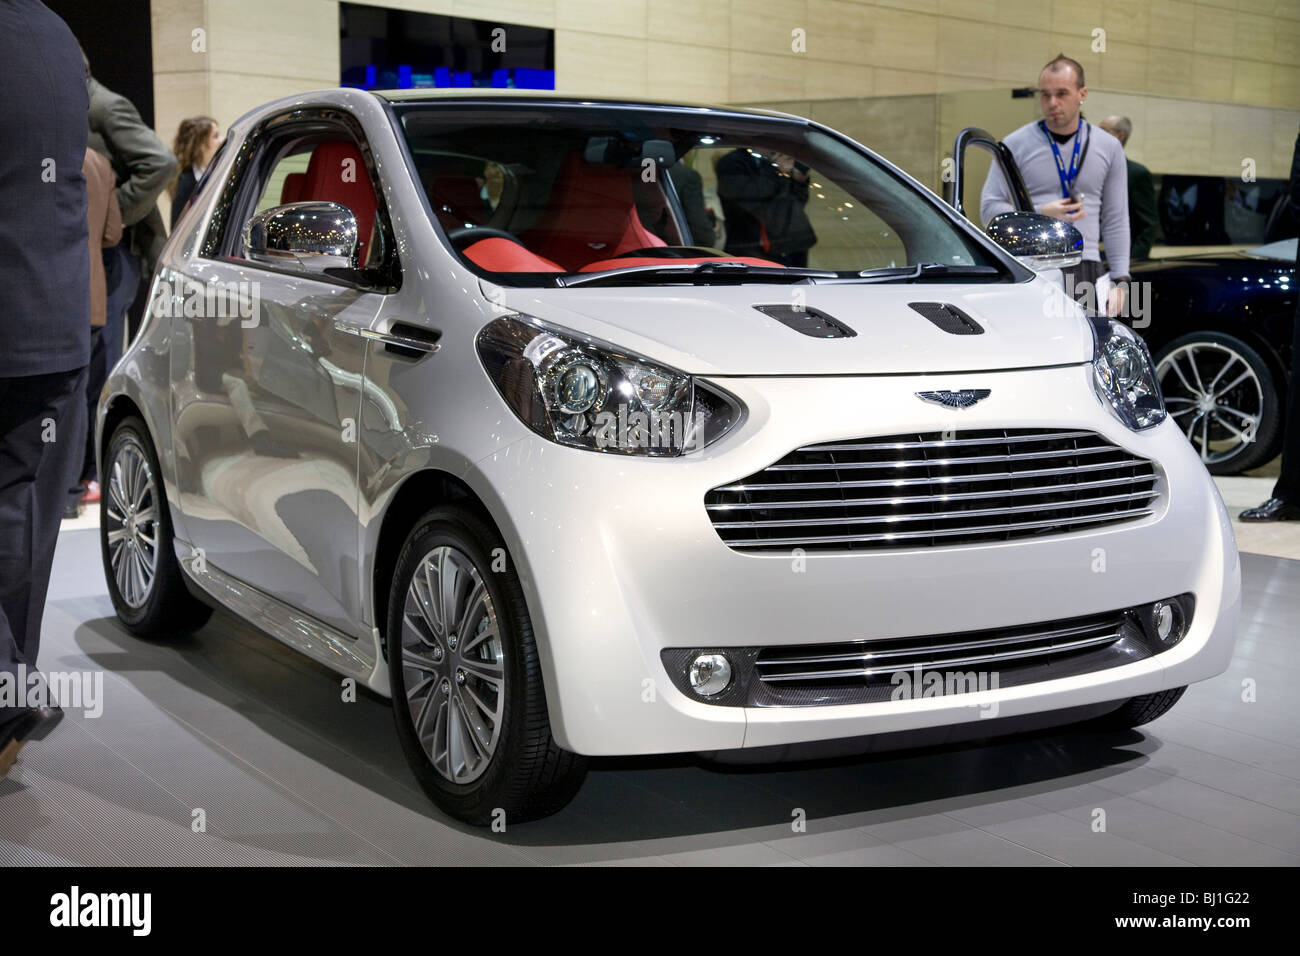 aston martin cygnet toyota iq based city car at a motor show stock photo 28308730 alamy. Black Bedroom Furniture Sets. Home Design Ideas